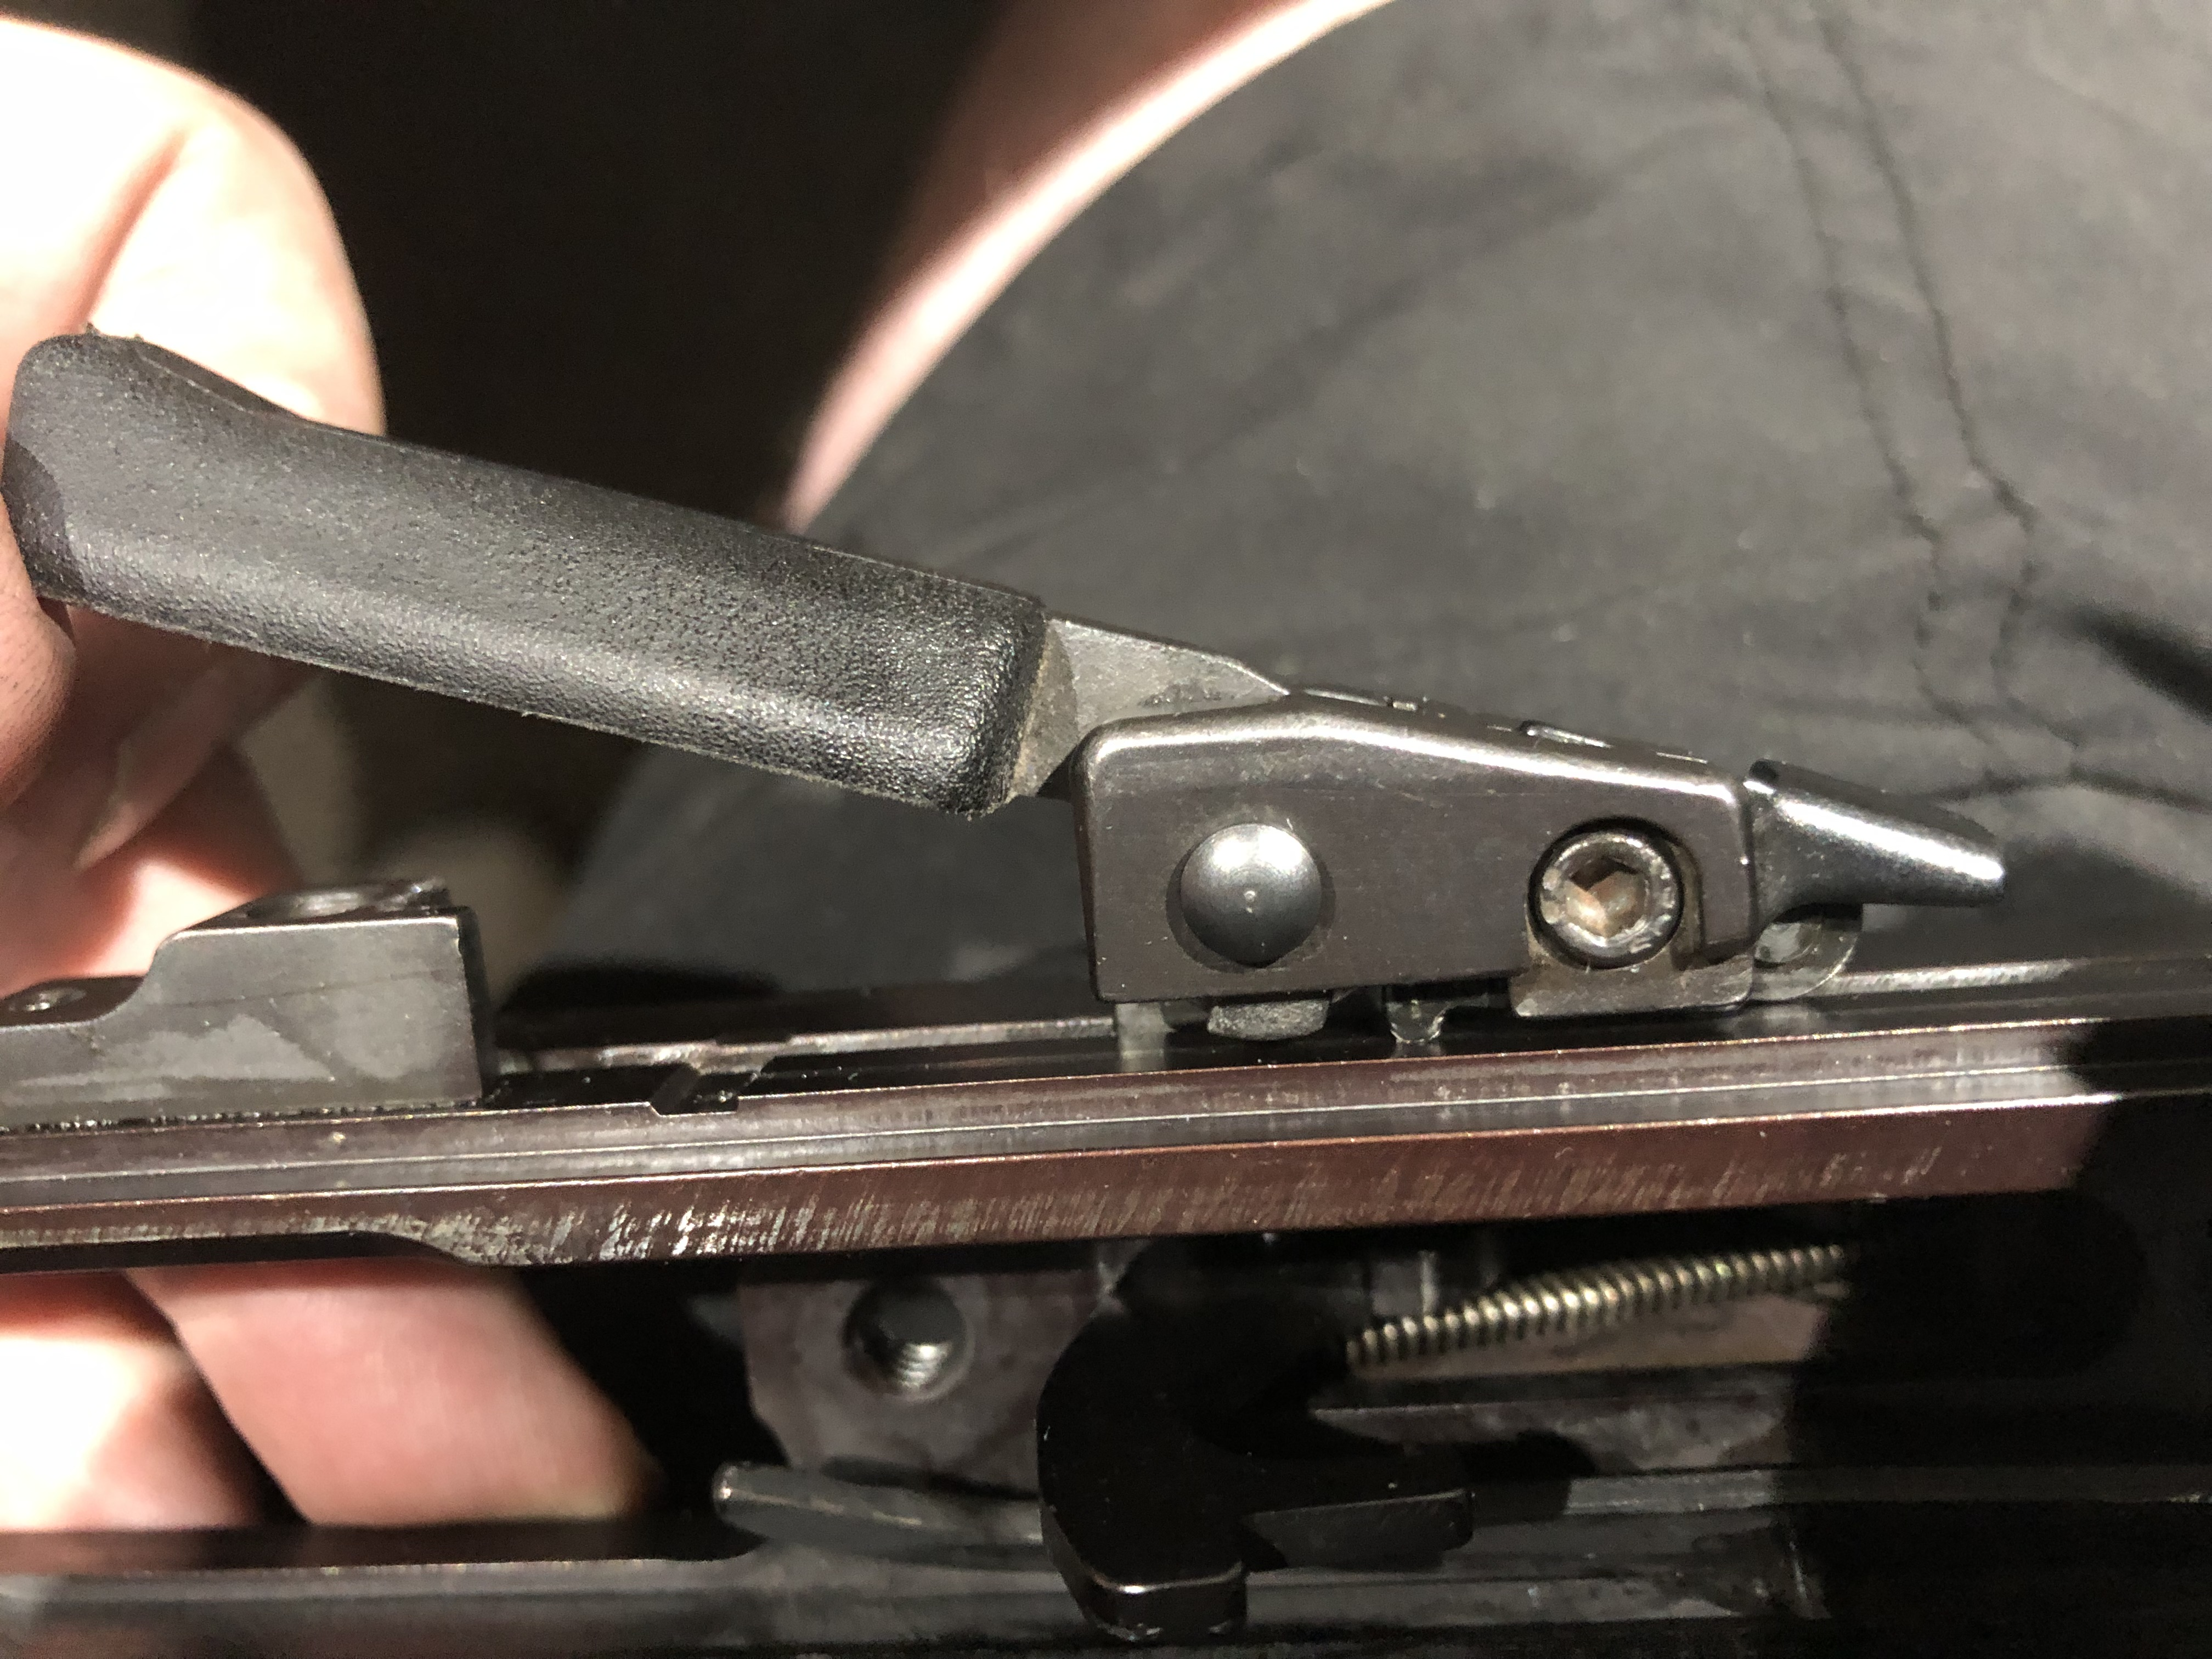 HK 630, 770, 940 - Cocking Lever (Charging Handle) Removal and Replacement-19.jpg